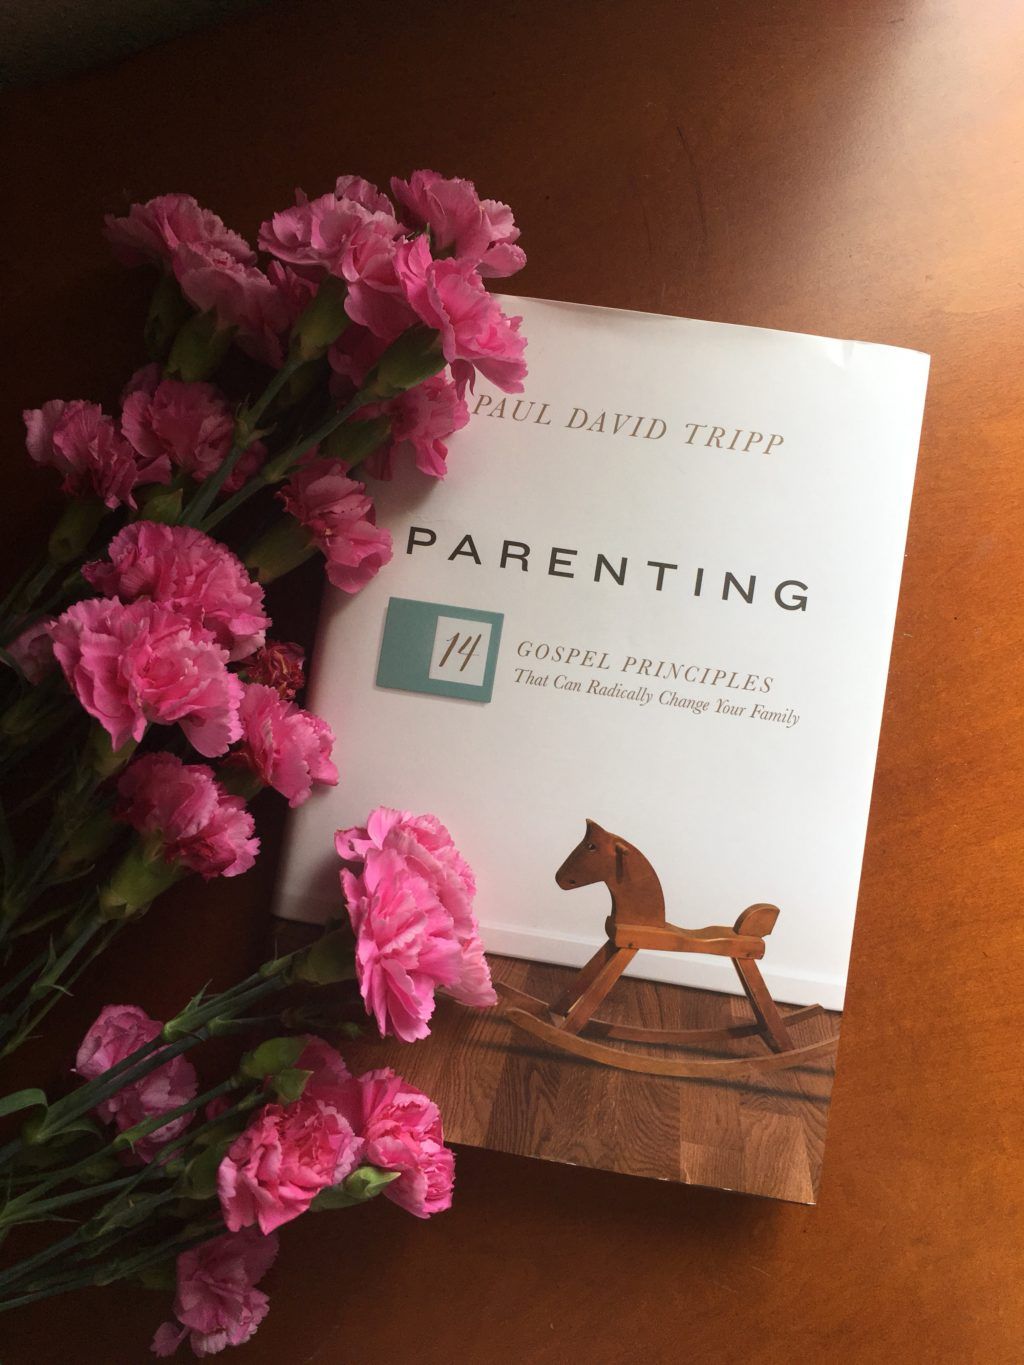 One of my favorite parenting books: Parenting by Paul David Tripp